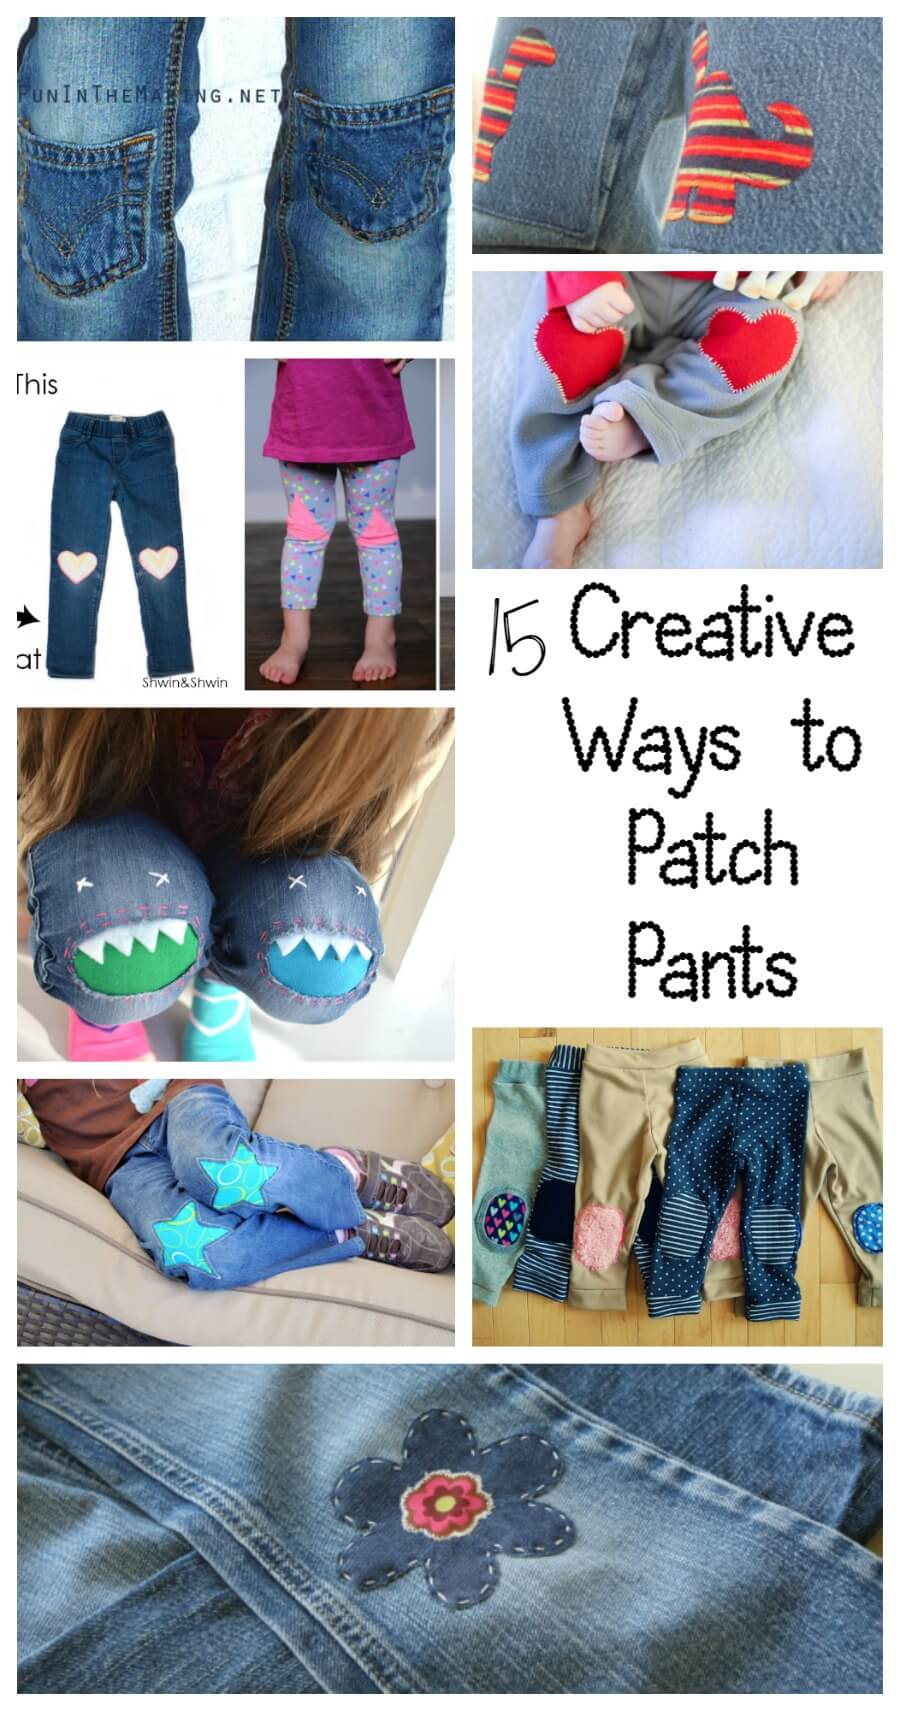 15 Creative Ways to Patch Pants, leggings and Pjs from Nap-Time Creations